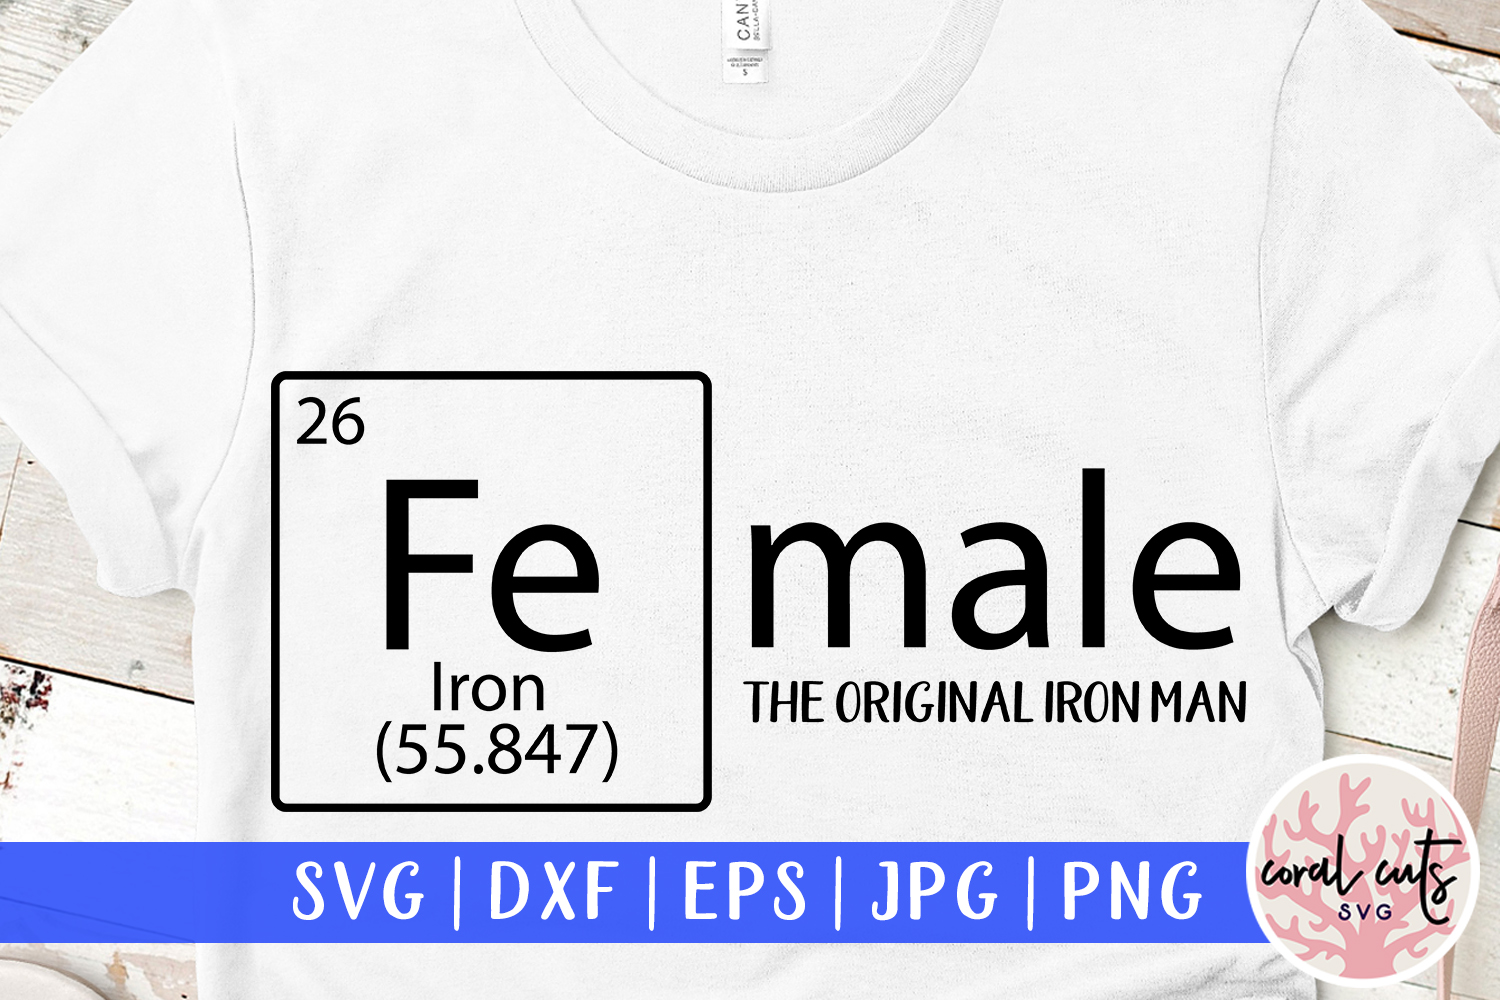 Download Free Female The Real Ironman Graphic By Coralcutssvg Creative Fabrica for Cricut Explore, Silhouette and other cutting machines.